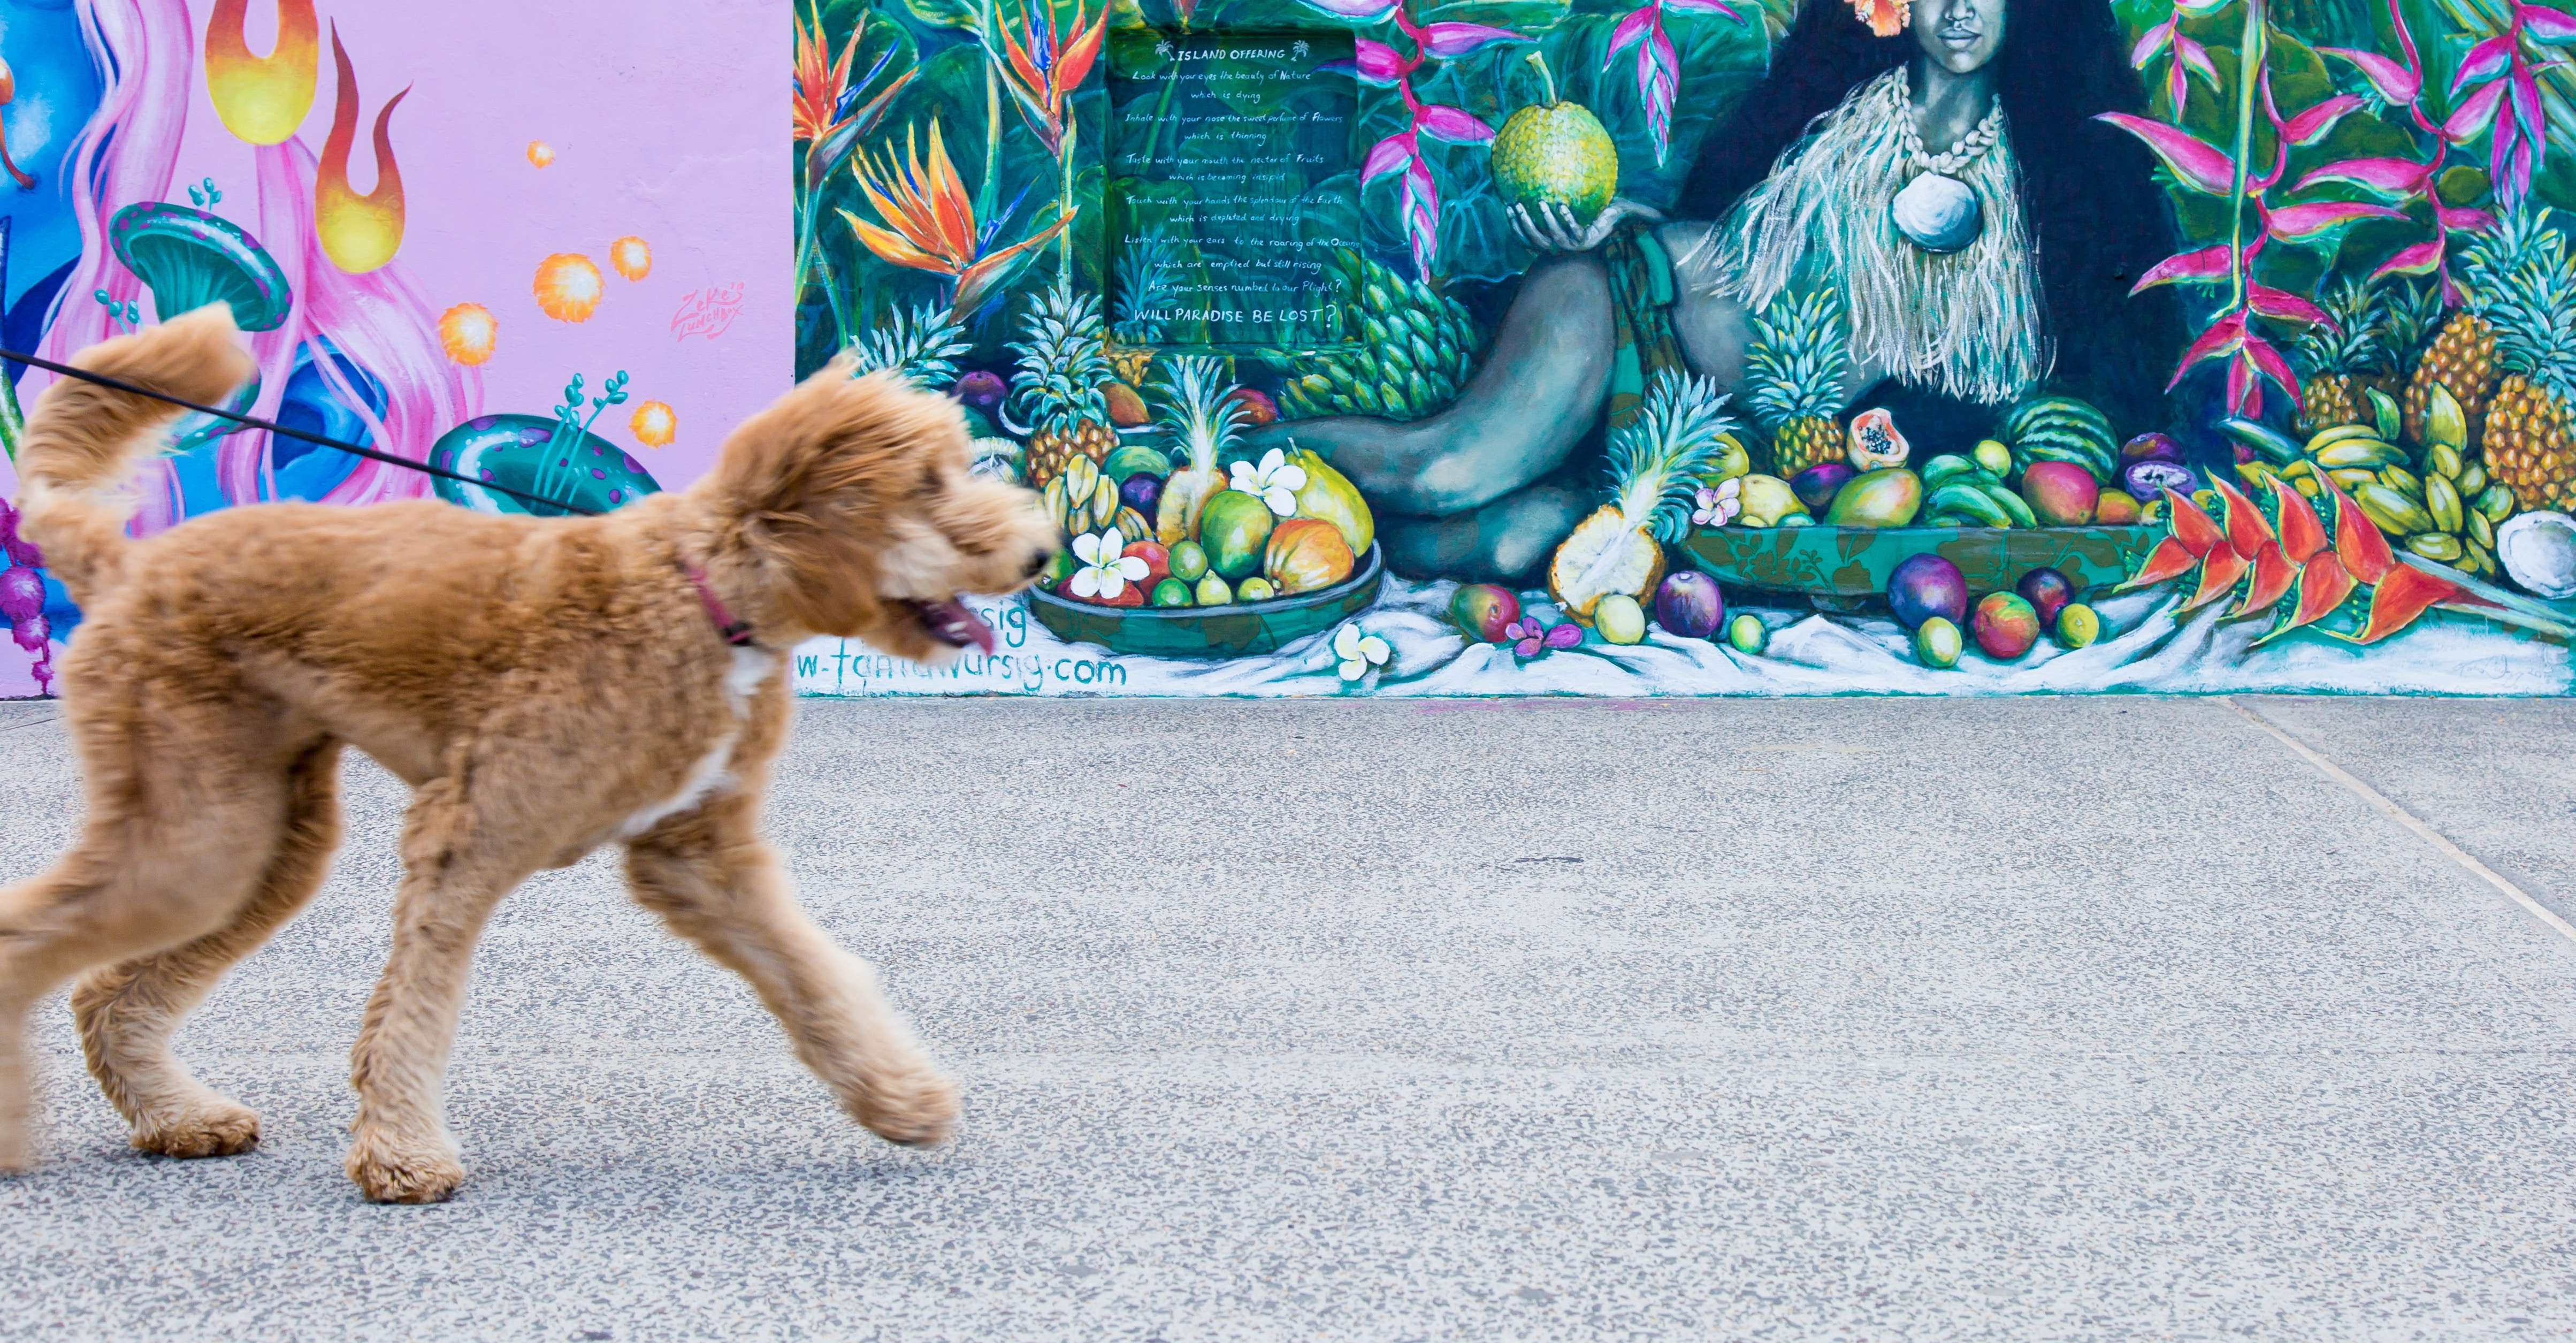 A dog walking along a street on a lead with a graffiti wall behind it